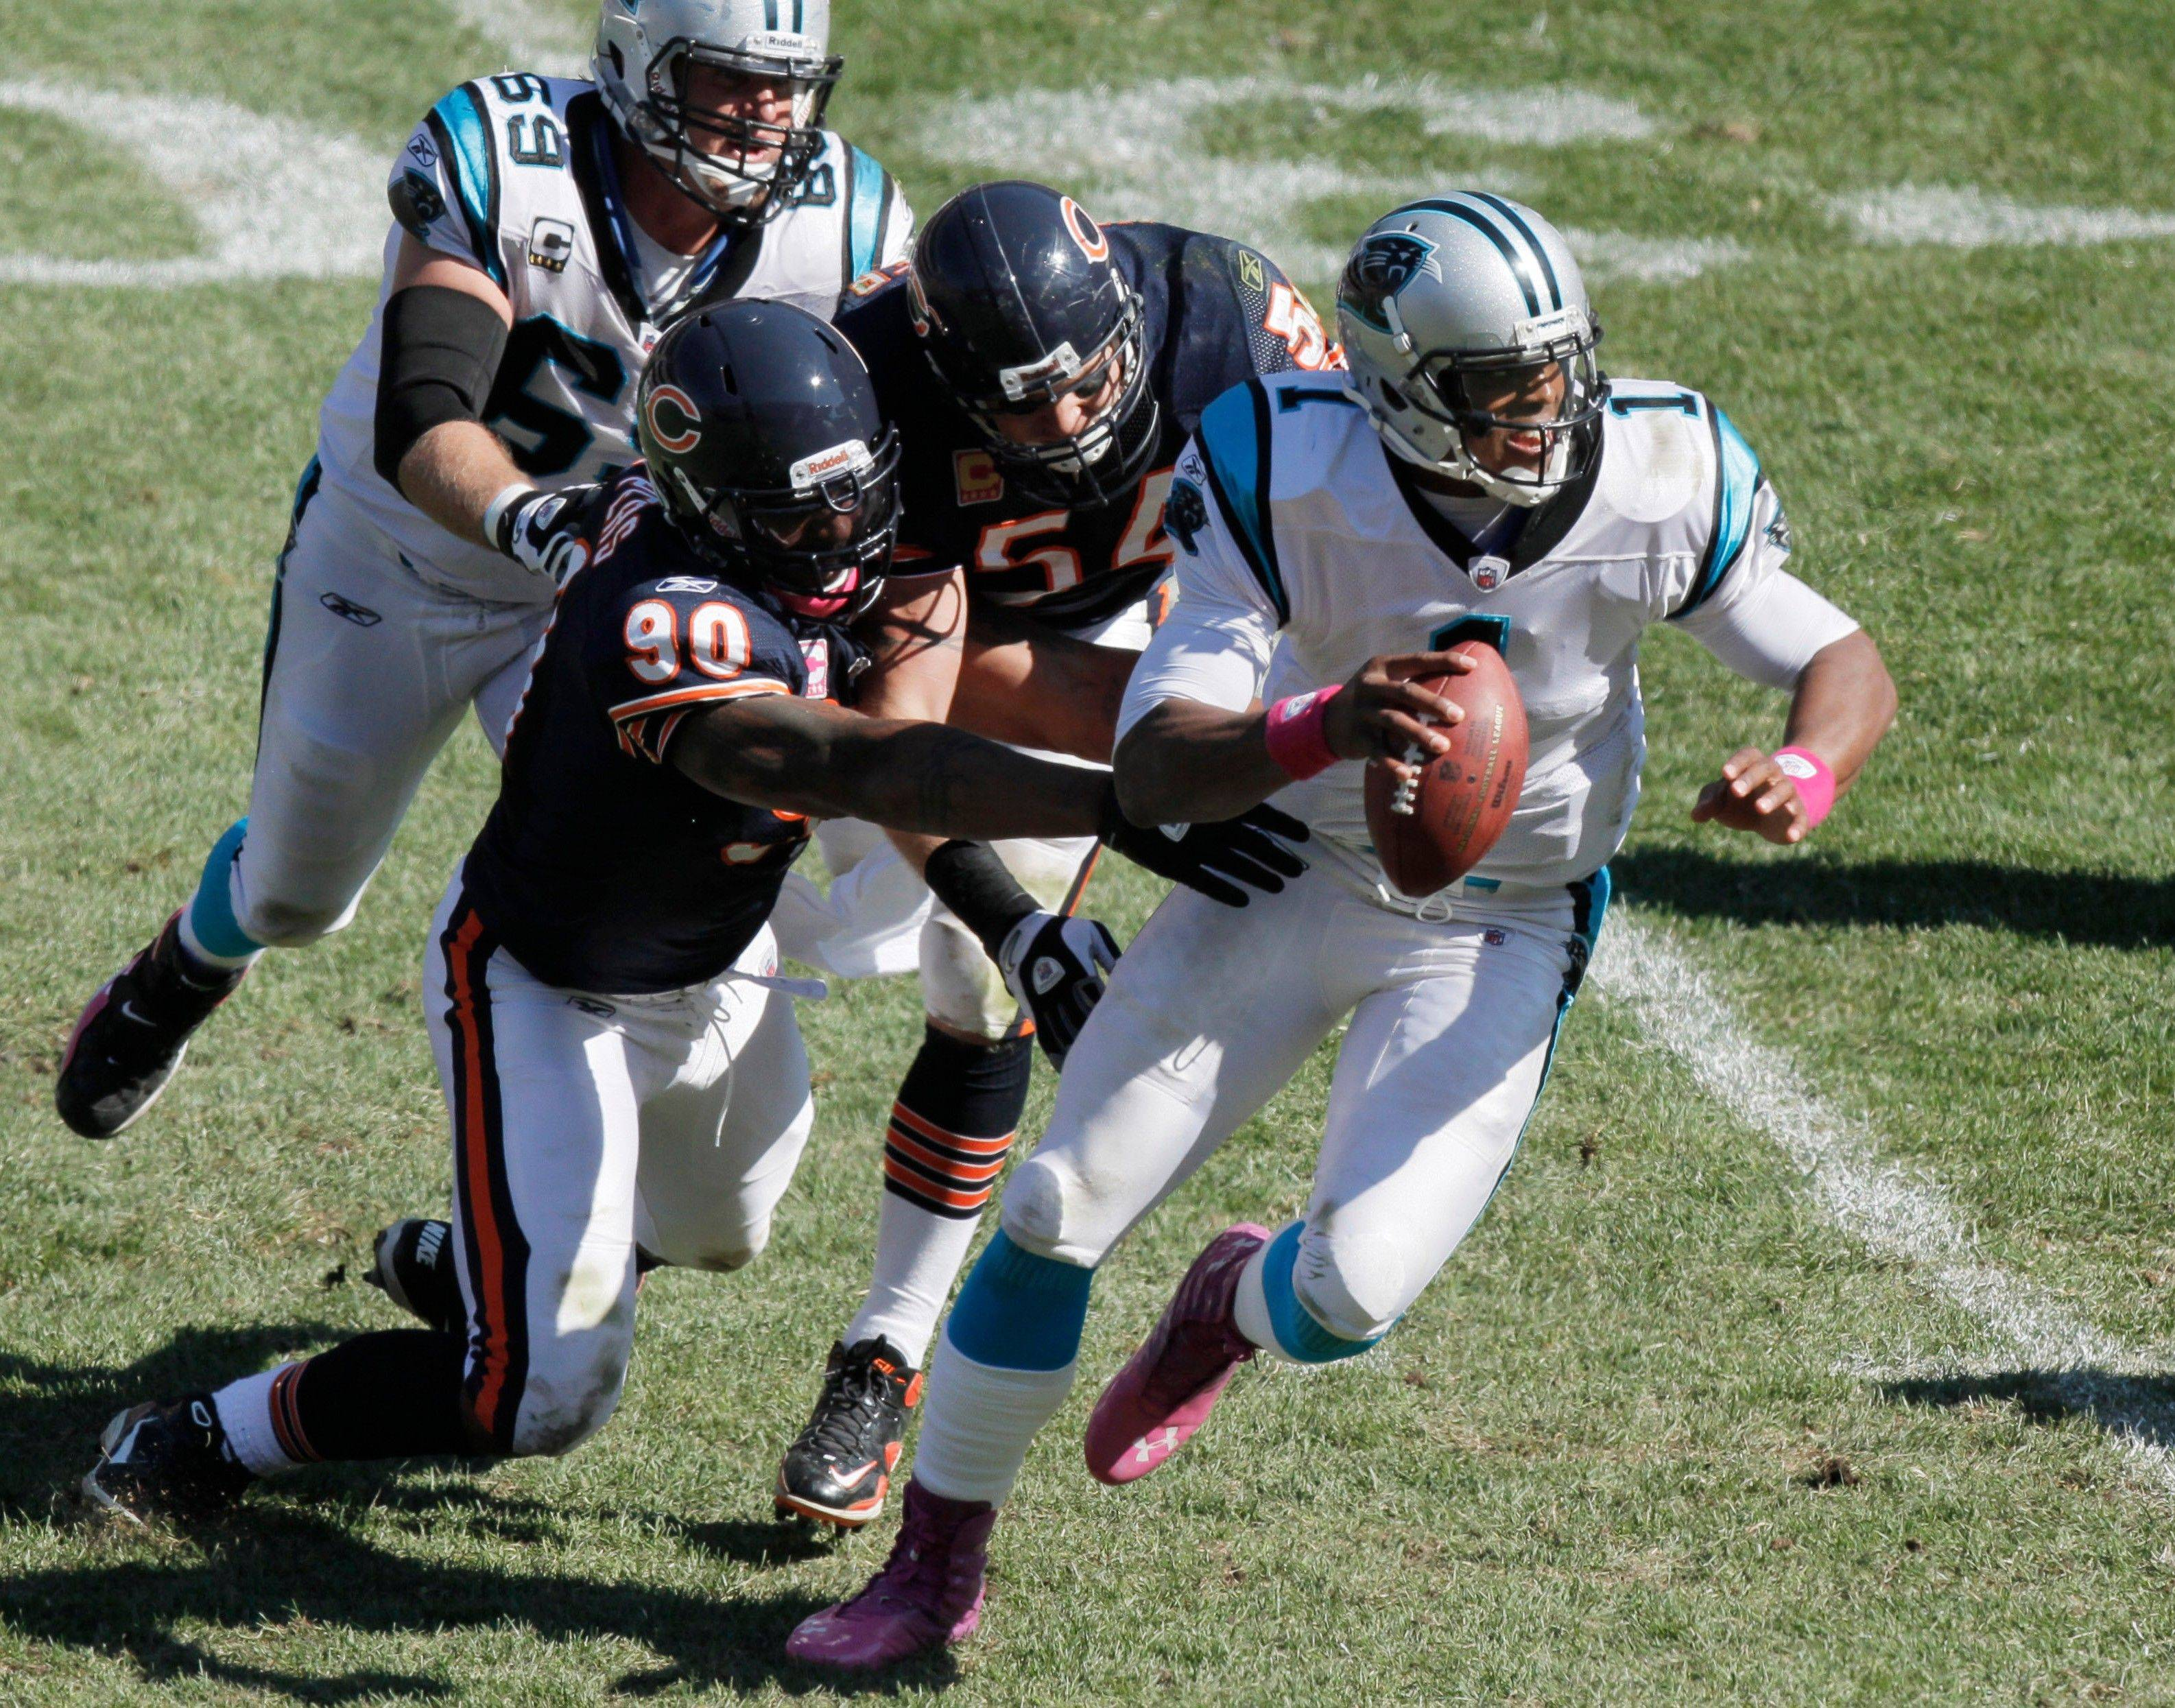 Carolina Panthers quarterback Cam Newton (1) is chased by Chicago Bears defensive end Julius Peppers (90) and linebacker Brian Urlacher (54) in the second half of an NFL football game in Chicago, Sunday, Oct. 2, 2011.